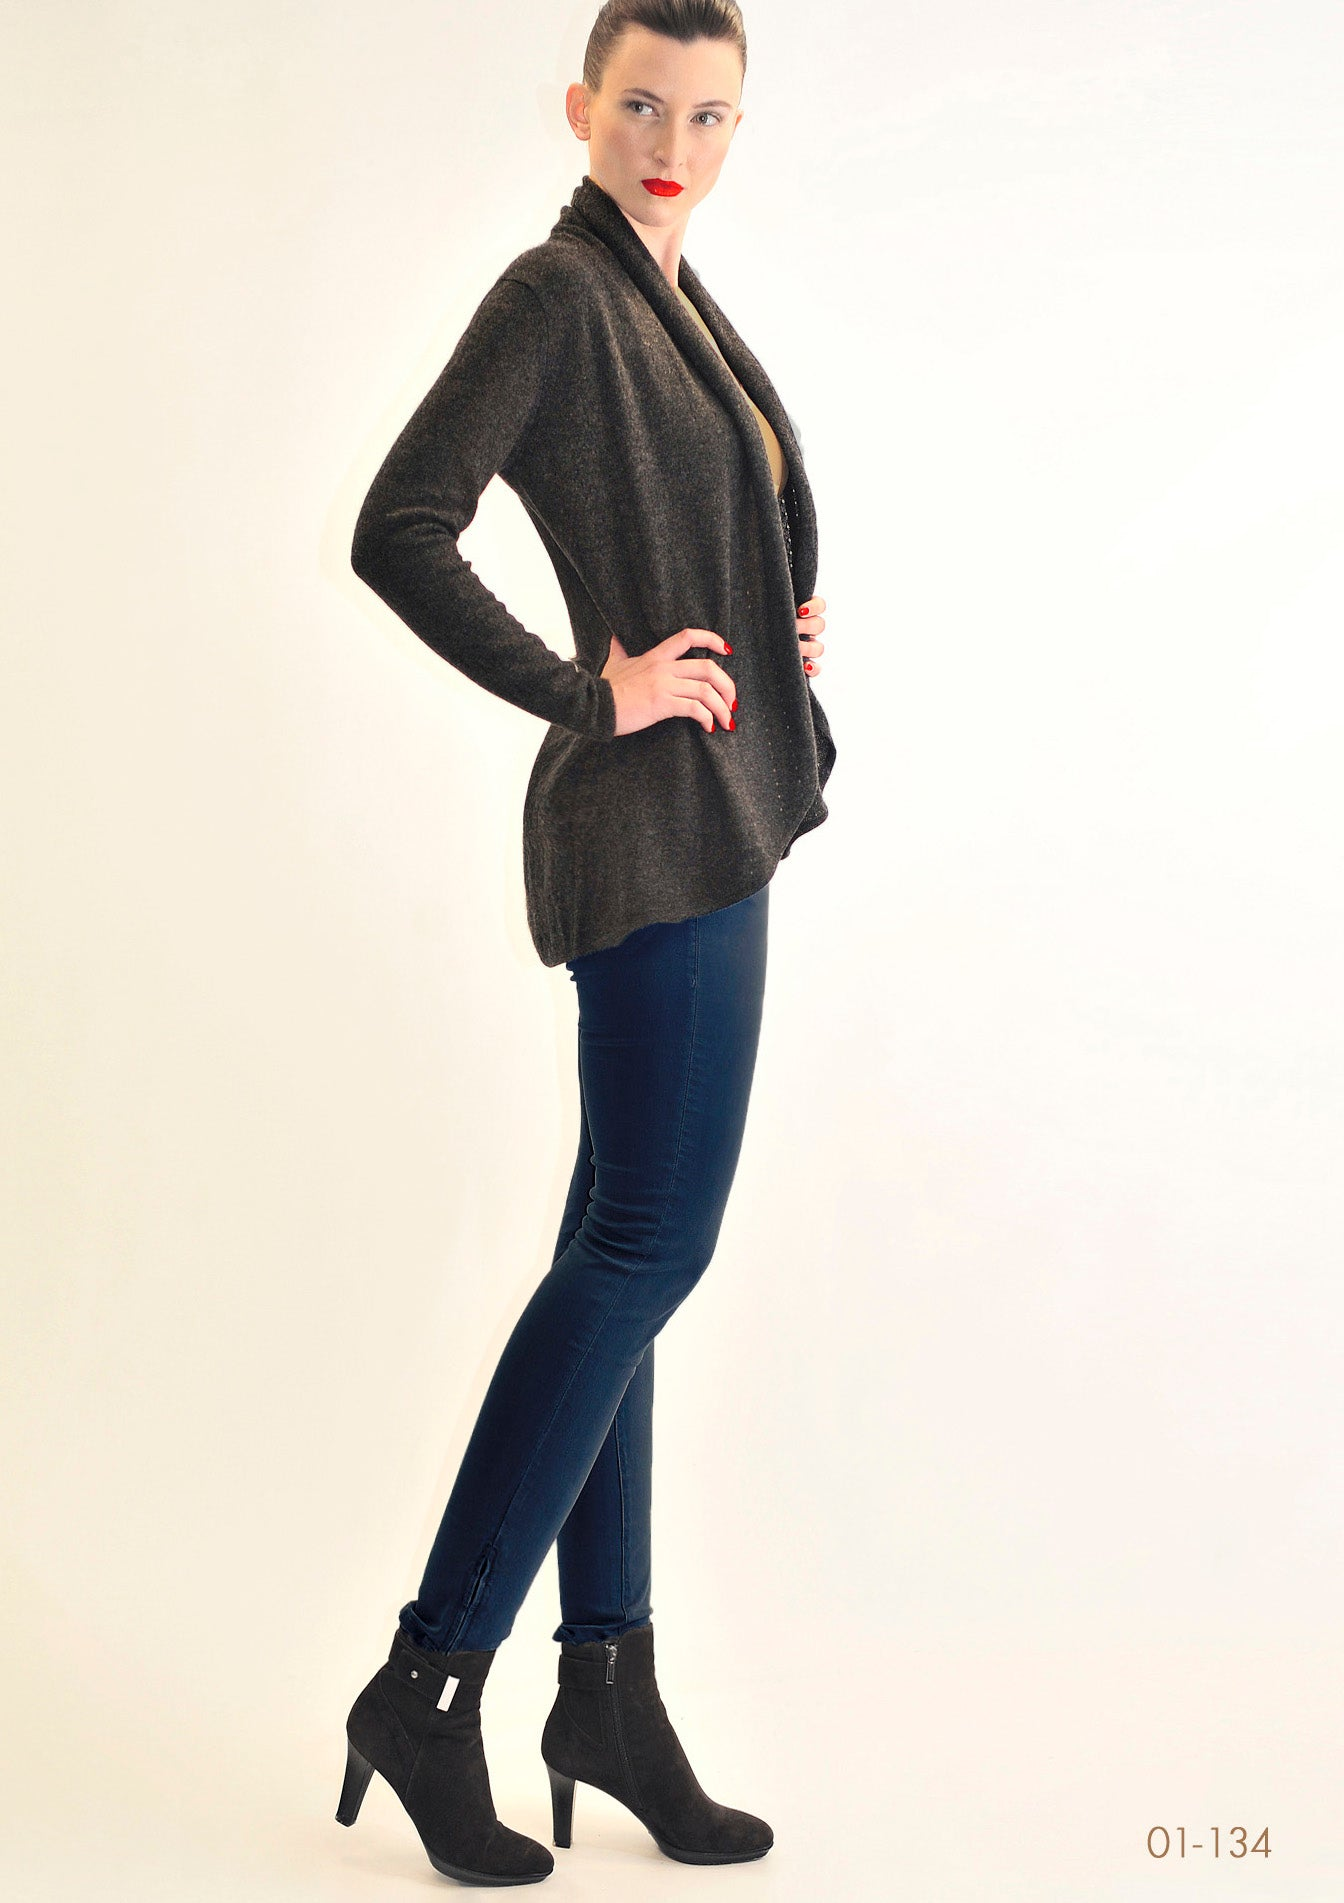 Lacy Cashmere cardigan in Charcoal grey